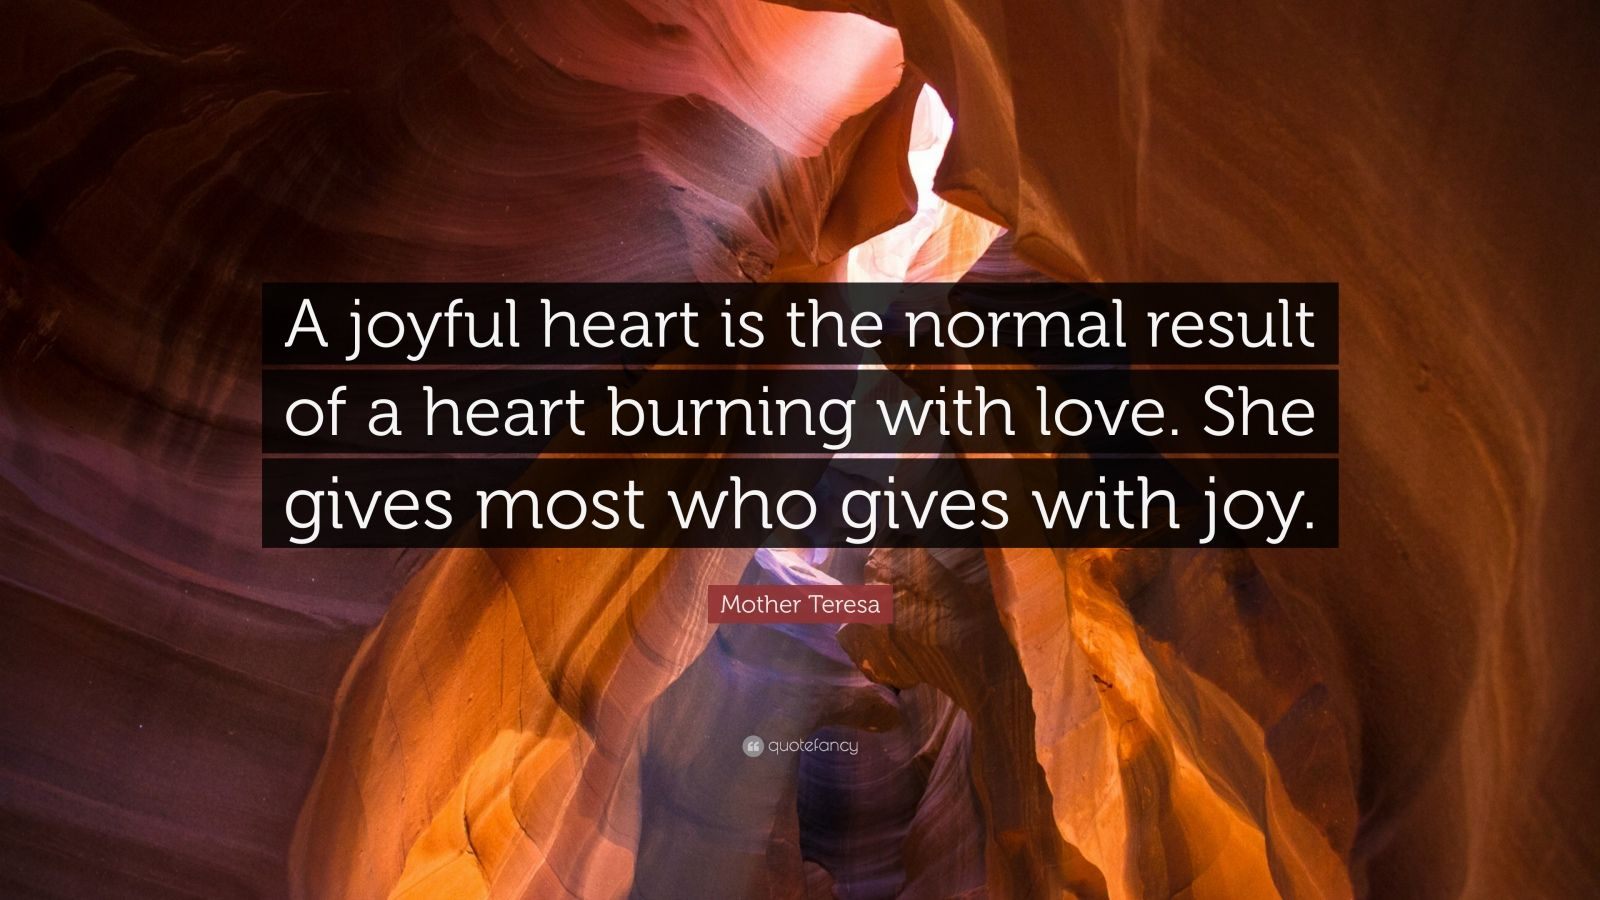 Mother Teresa Quote: U201cA Joyful Heart Is The Normal Result Of A Heart Burning